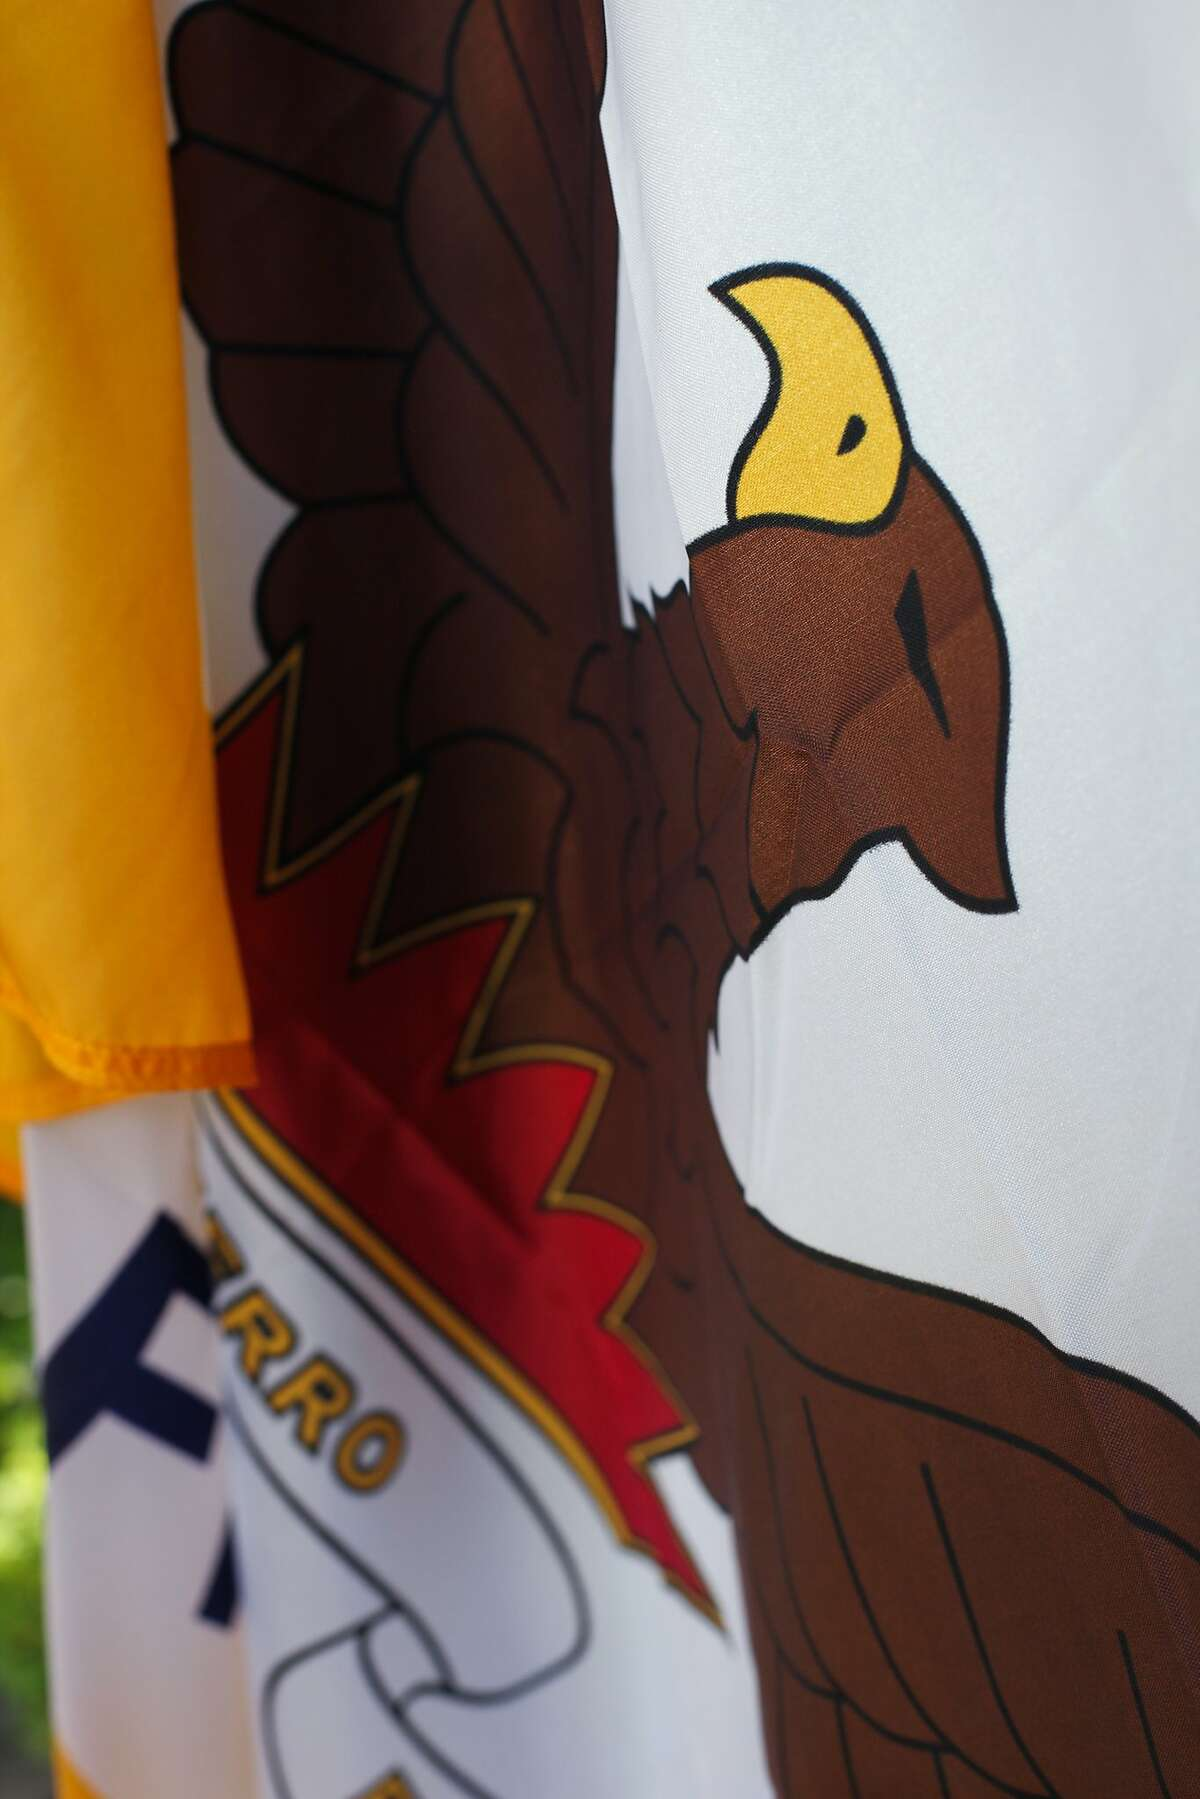 A detail of the rising phoenix rising from flames on the San Francisco flag in Kensington, California on August 27, 2015. Roman Mars, host and creator of design radio show 99% Invisible, has a campaign to change San Francisco's flag.